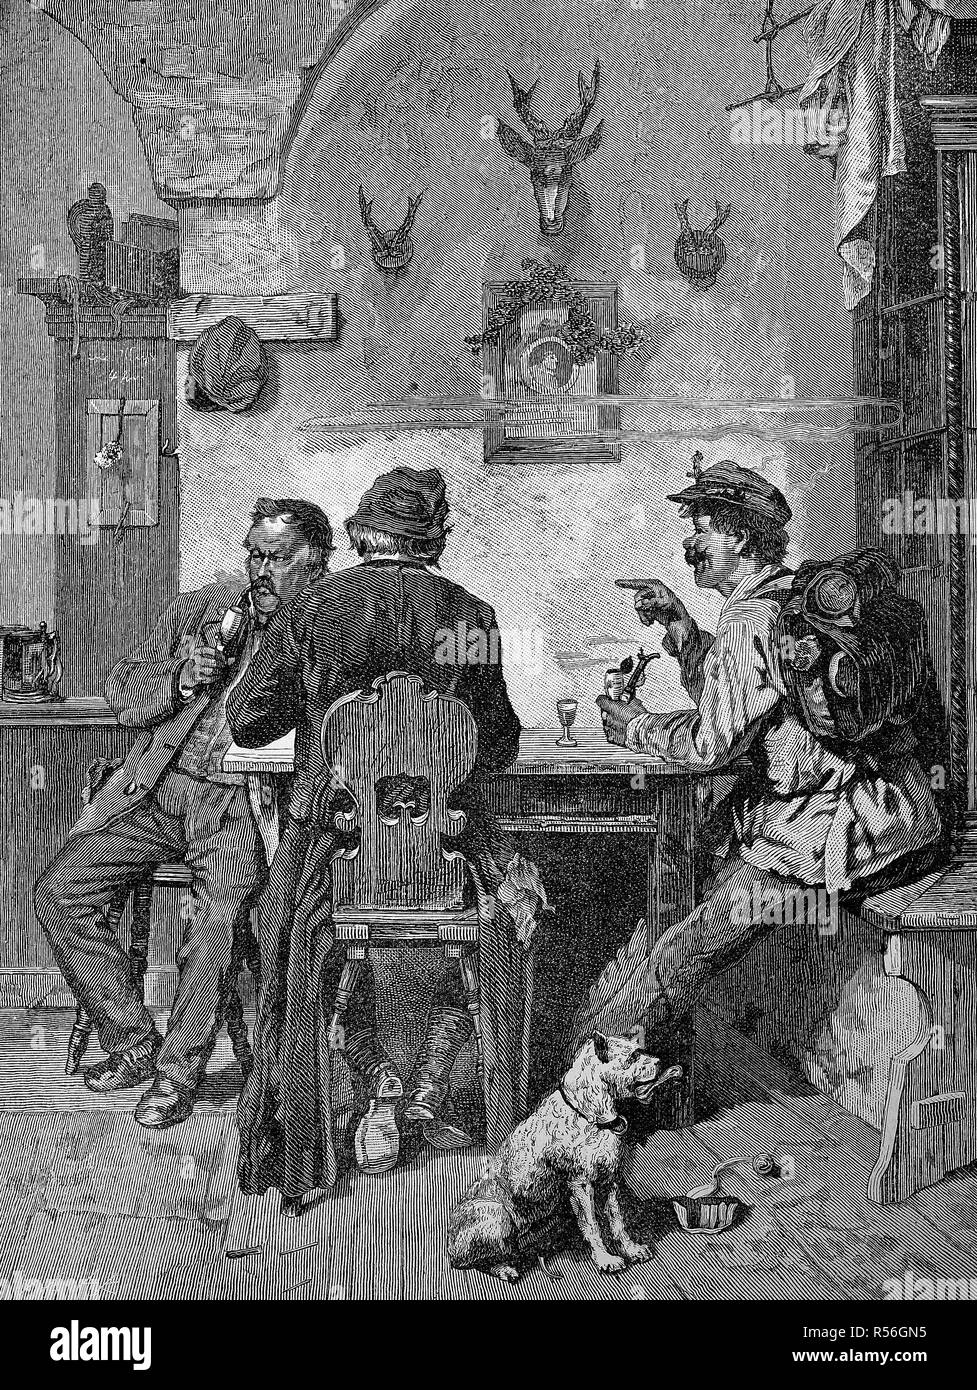 Impostor bothering the locals in a village inn with his tales, 1880, woodcut, Germany - Stock Image